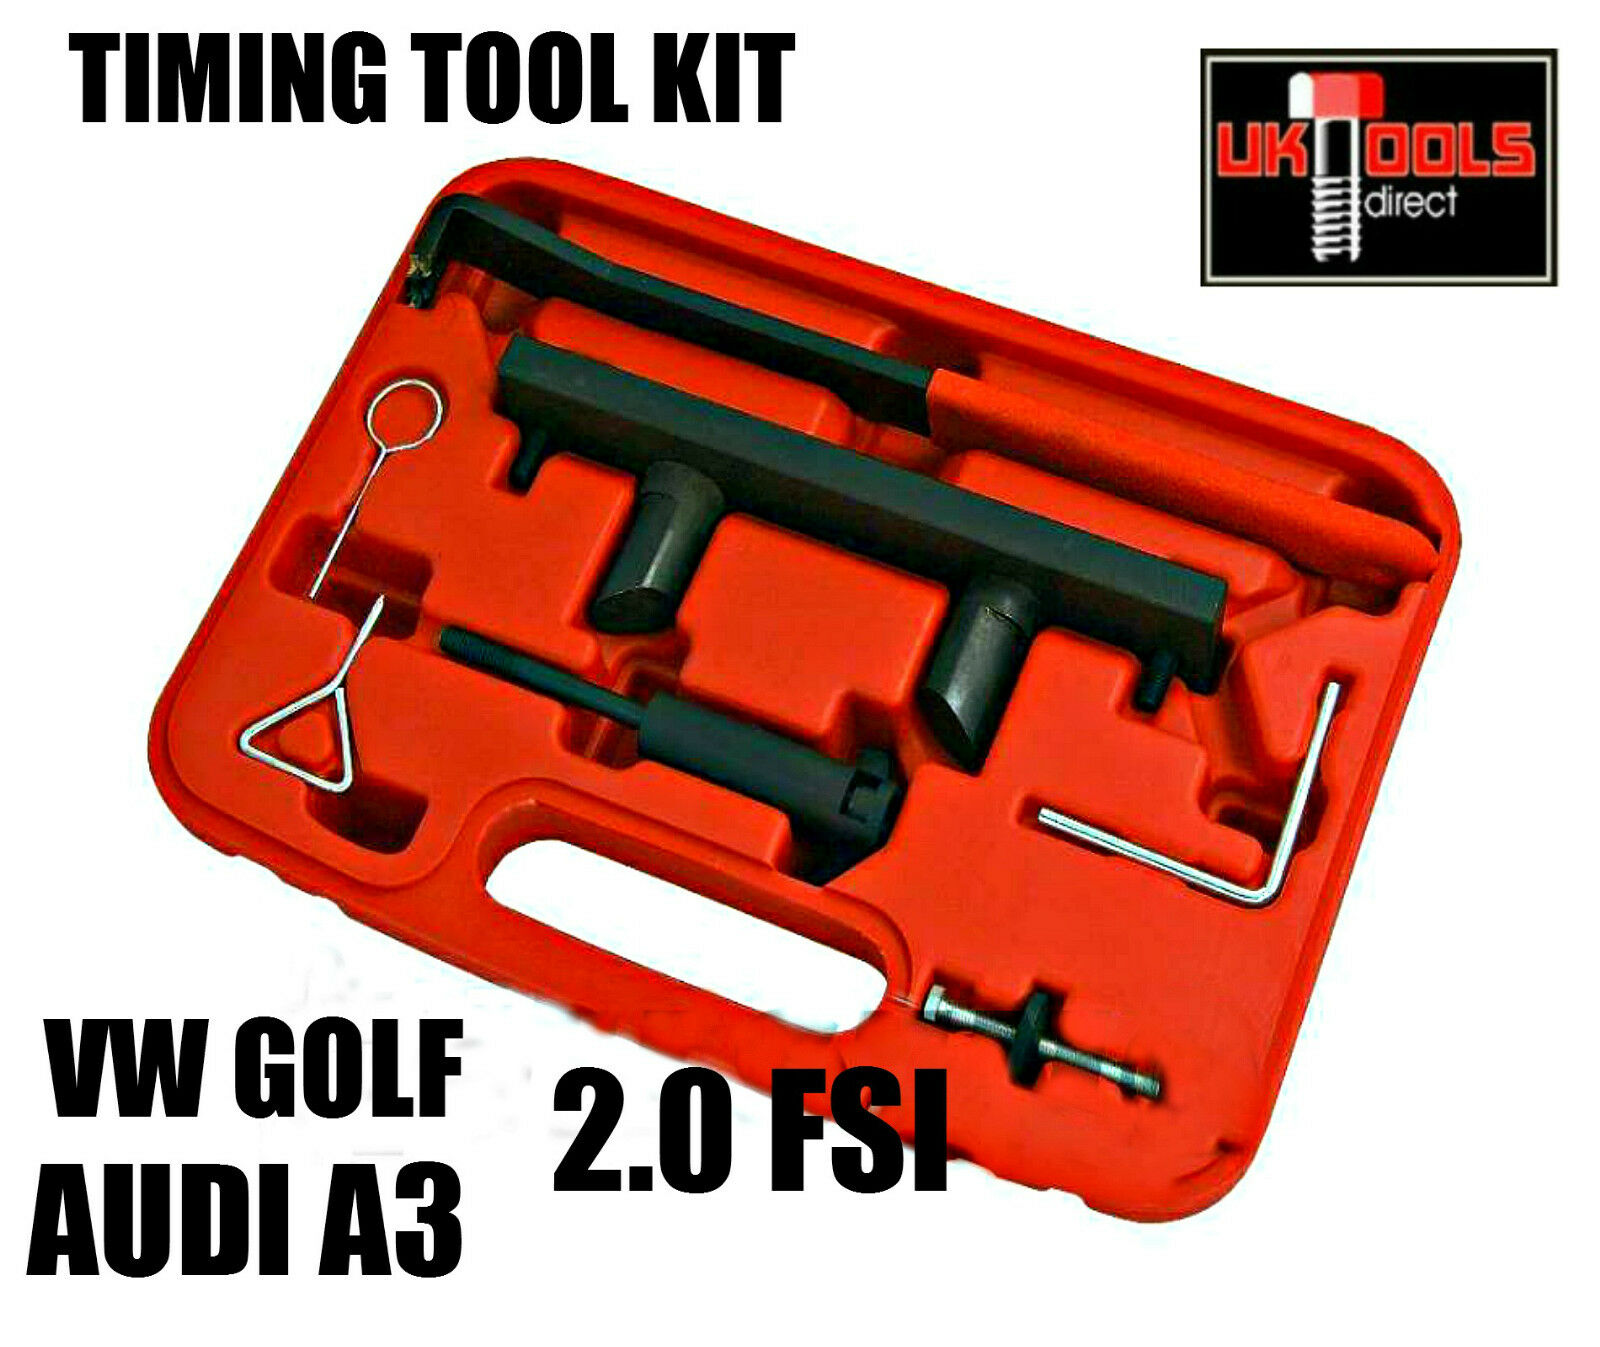 Vw 1600 Engine Removal: Vw Audi Timing Tool Kit Golf Passat Audi A3 A4 A6 2.0FSI